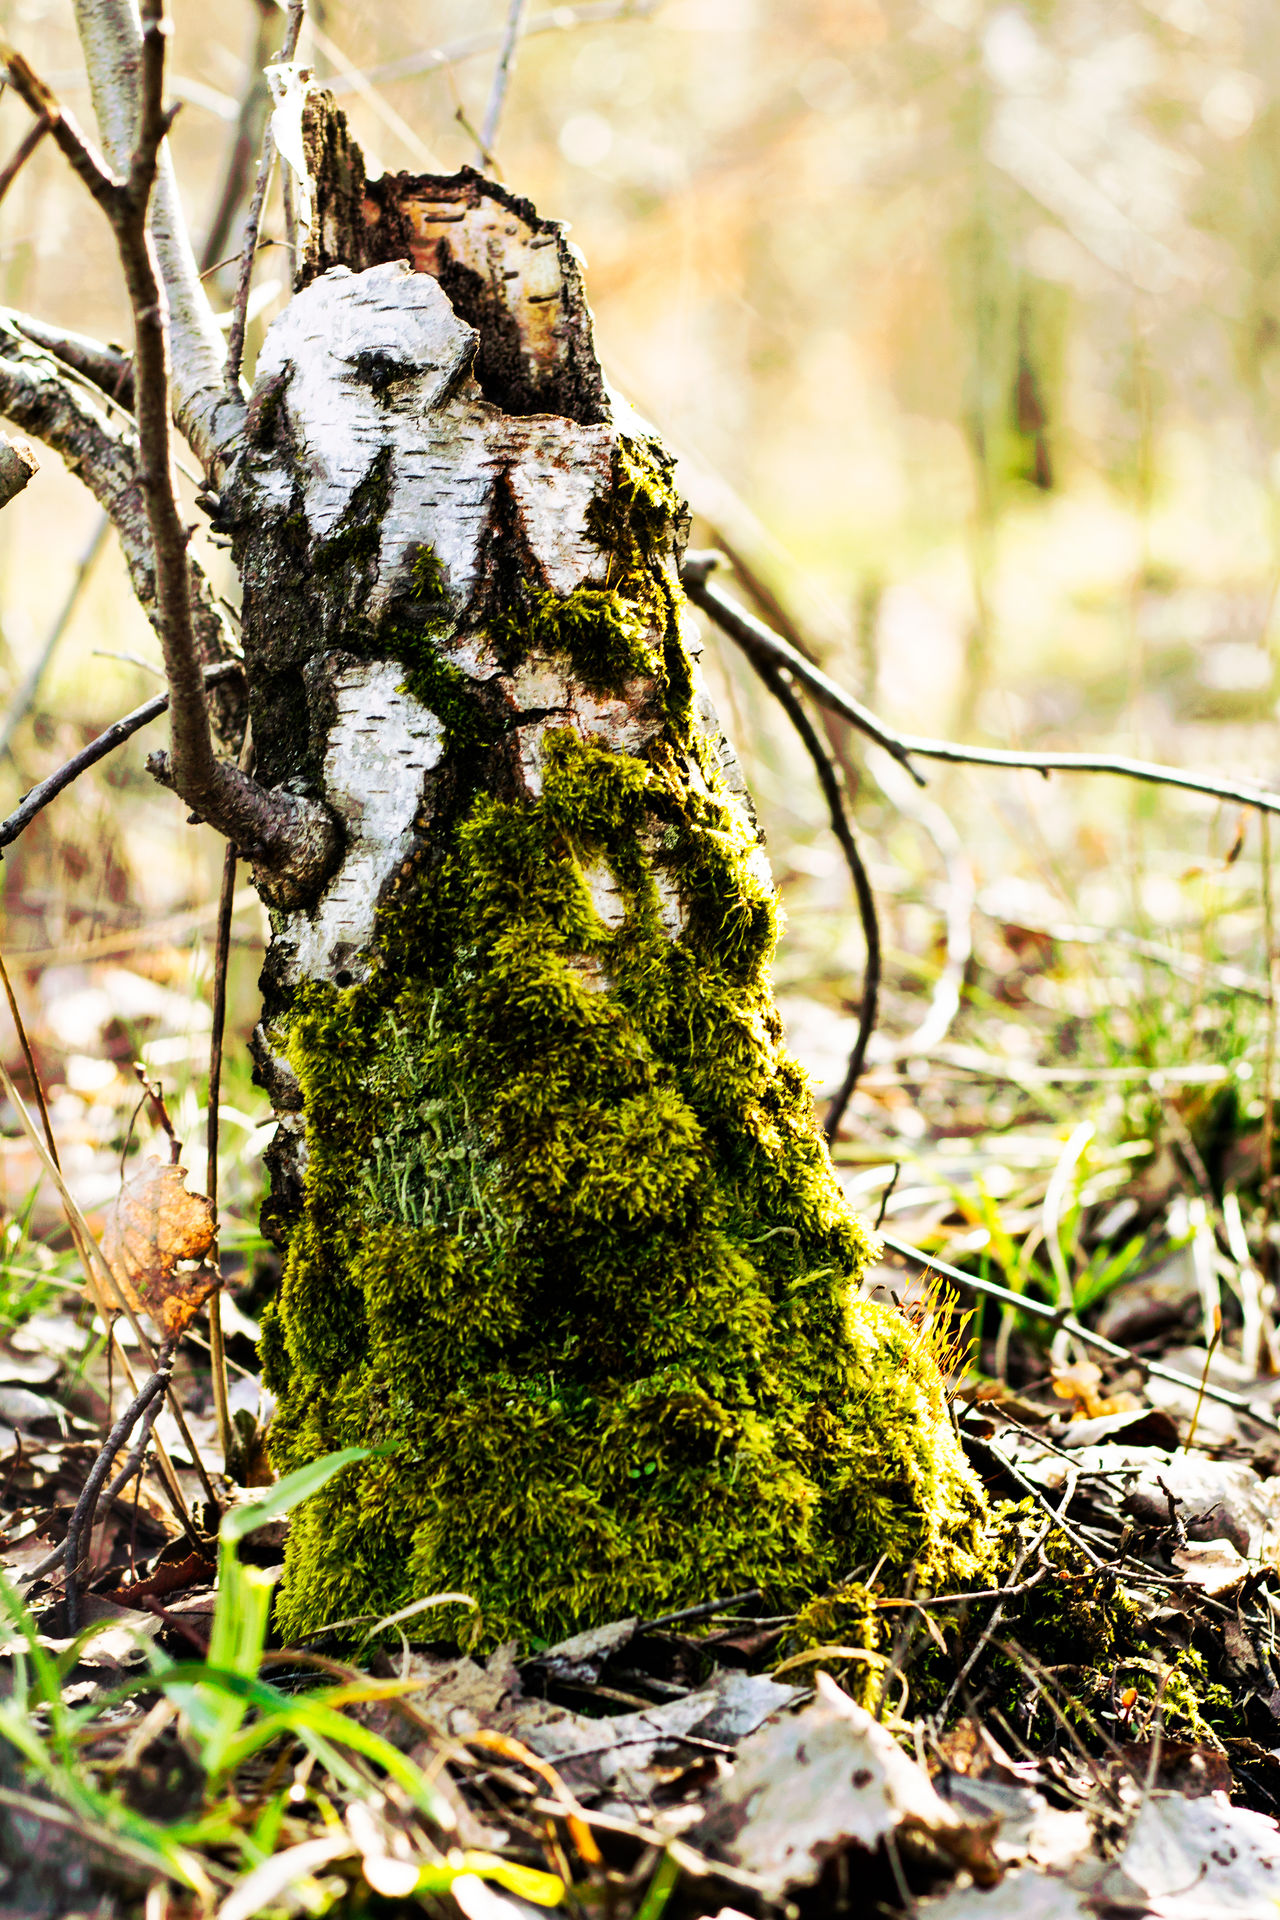 Beauty In Nature Close-up Day Focus On Foreground Forest Fragility Green Color Growth Nature No People Outdoors Plant Tree